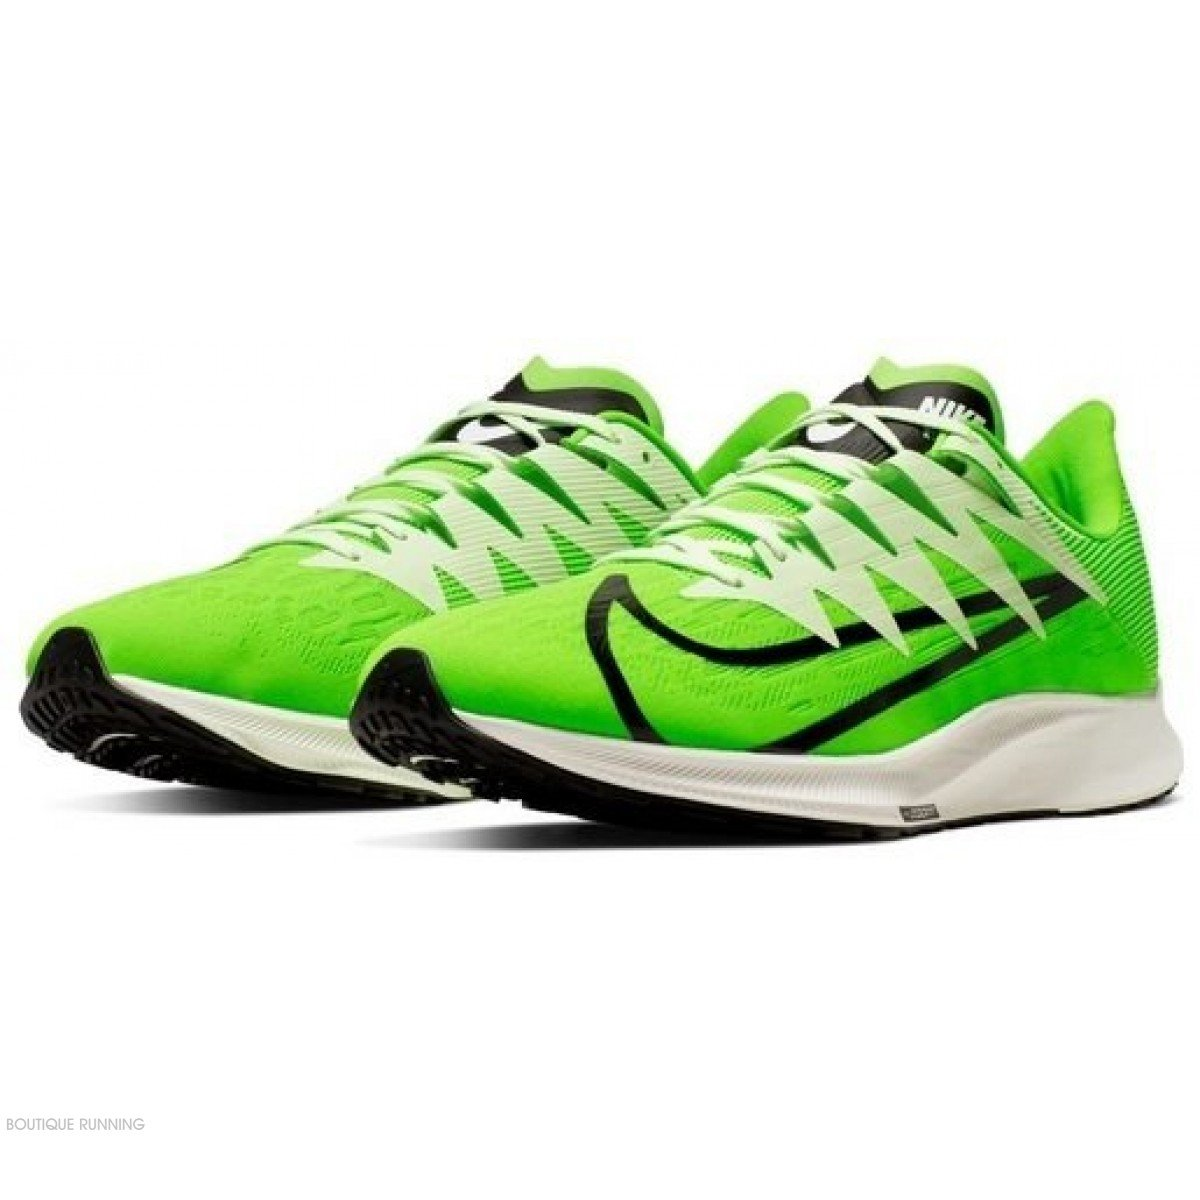 Nike Zoom Rival Fly cd7288 300